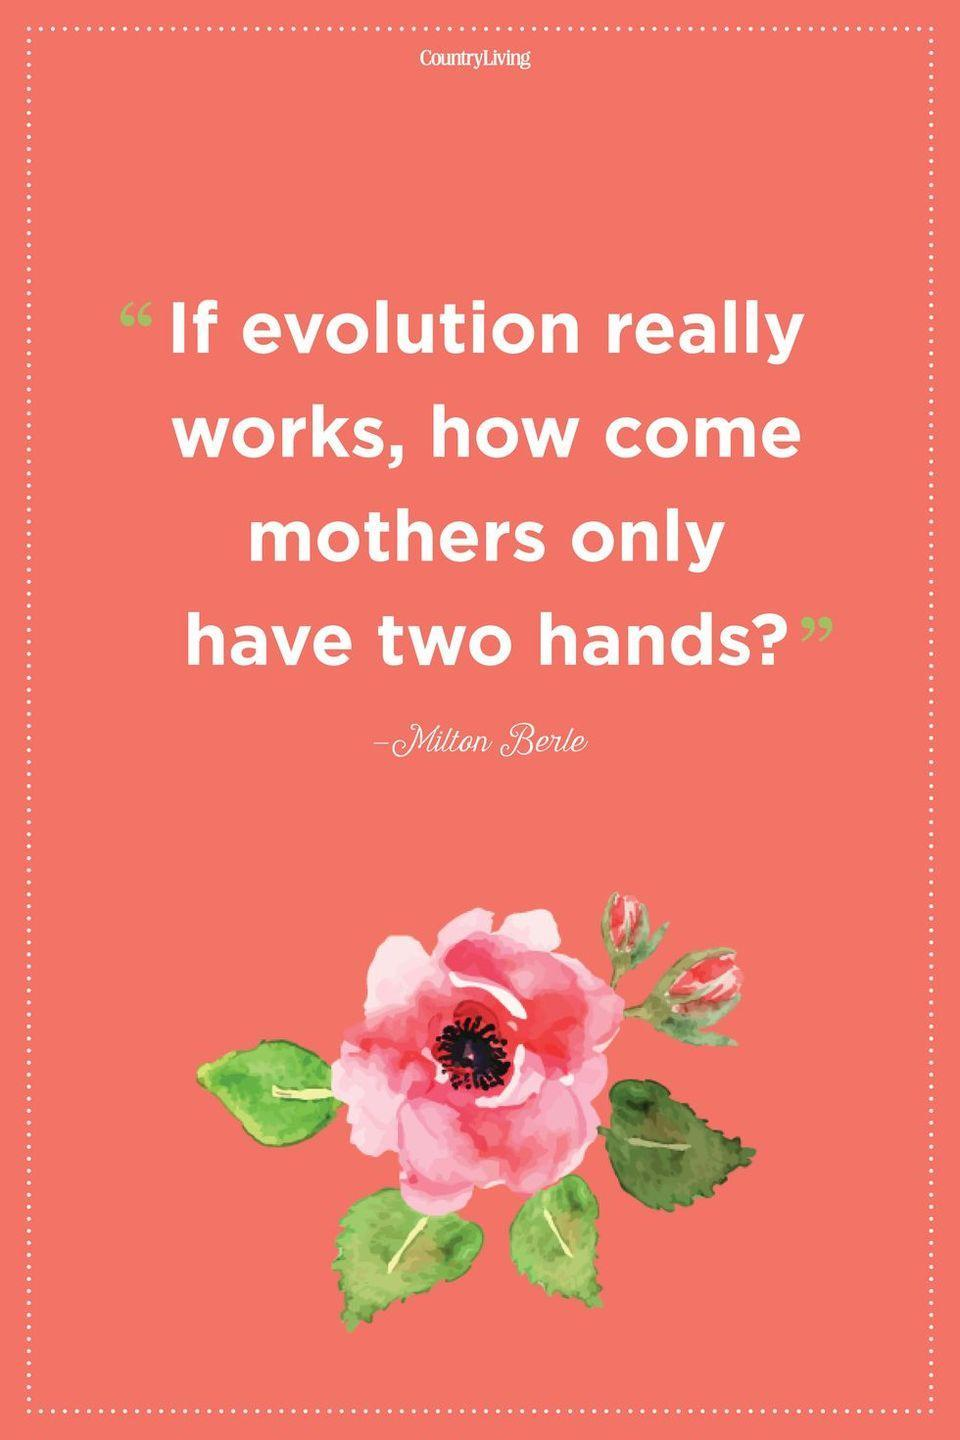 "<p>""If evolution really works, how come mothers only have two hands?""</p>"